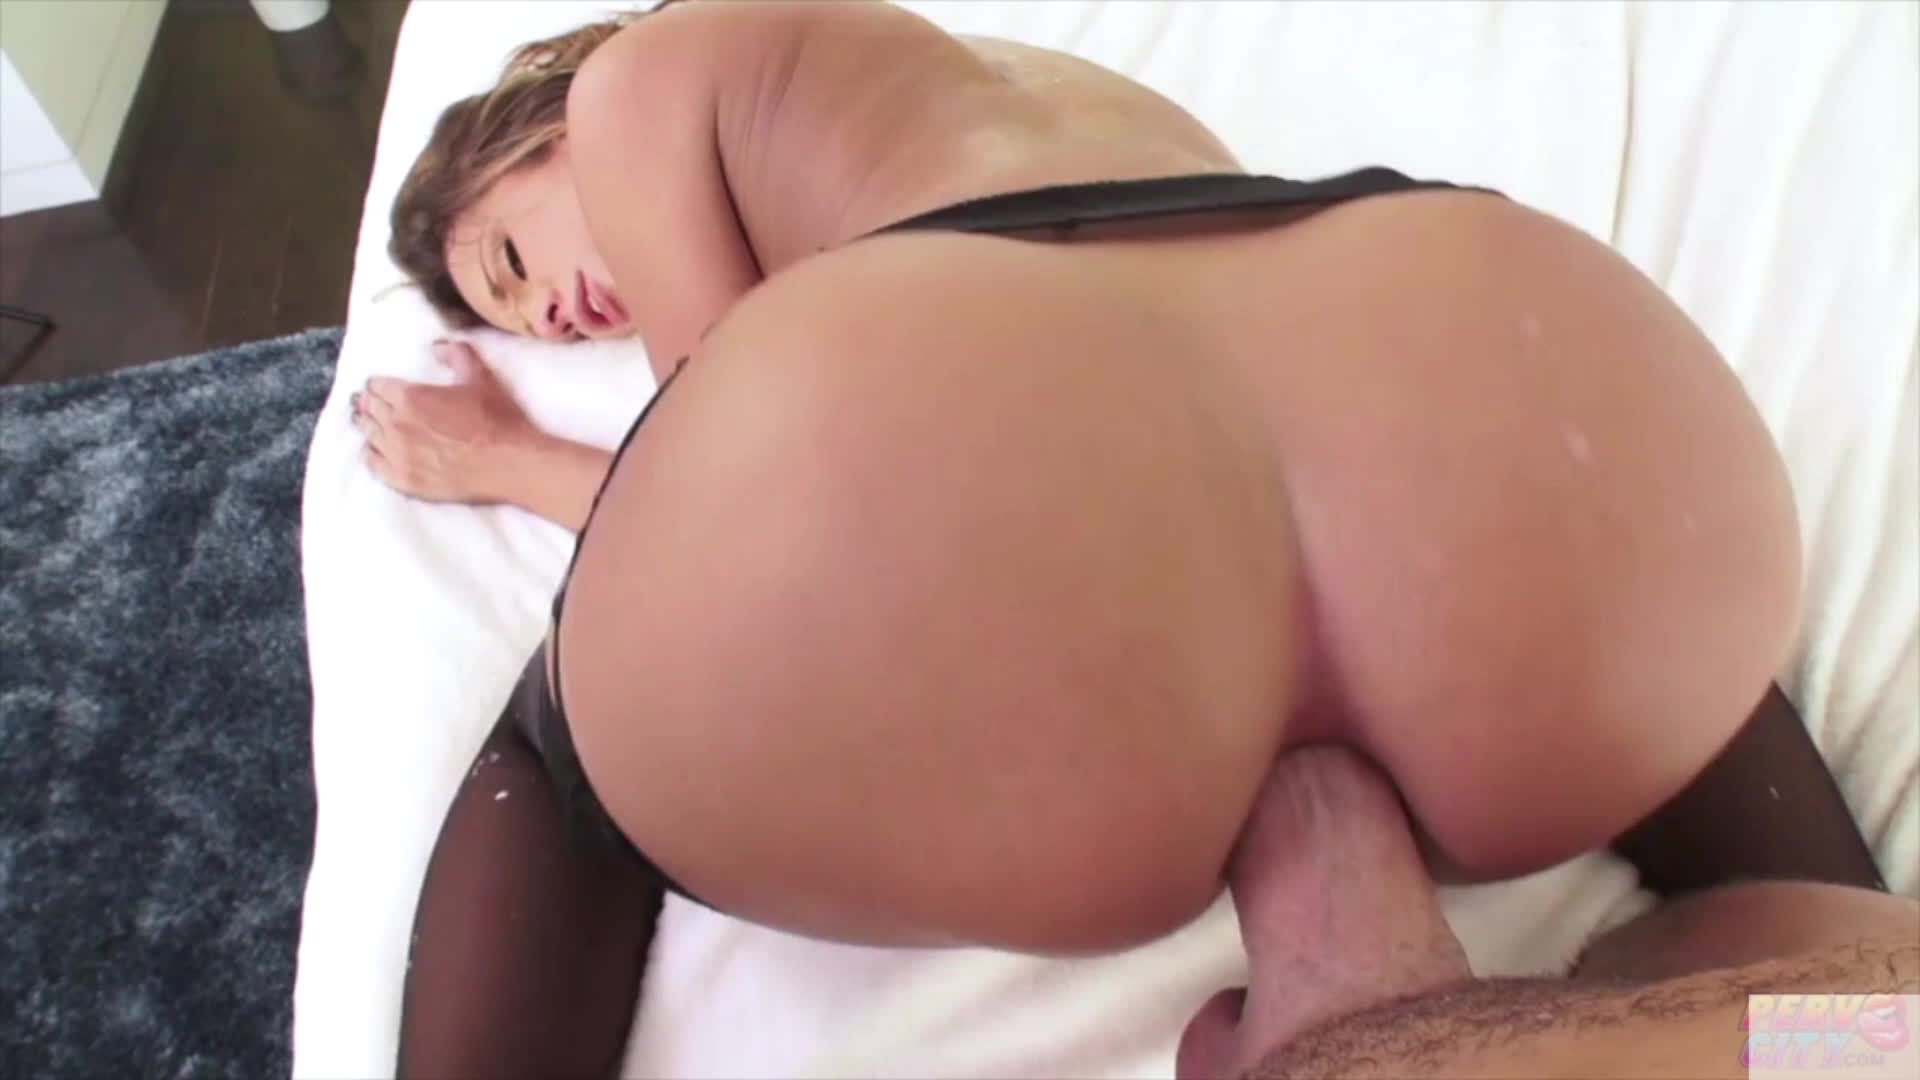 Watch rubbing her clit to orgasm erotic gif best porn gifs